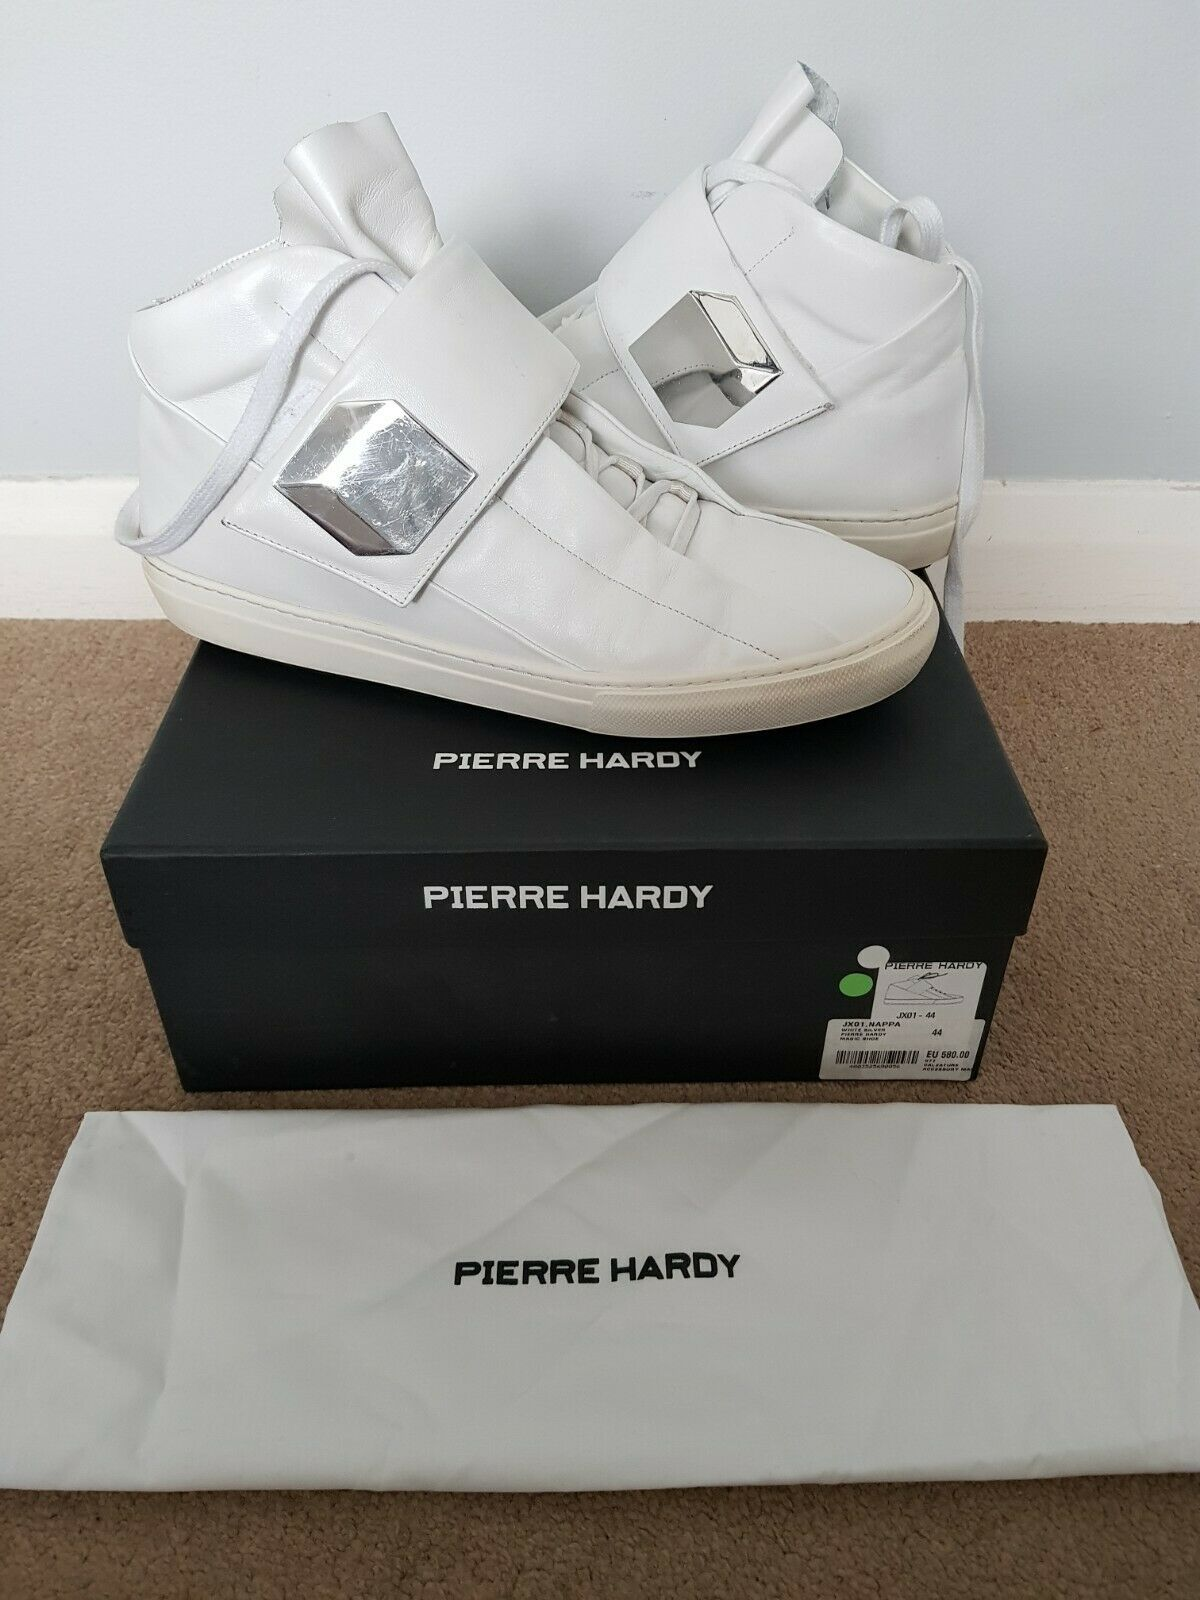 Pierre Hardy JX01 Whie Nappa Mens Size 10 Trainers - Used very good condition